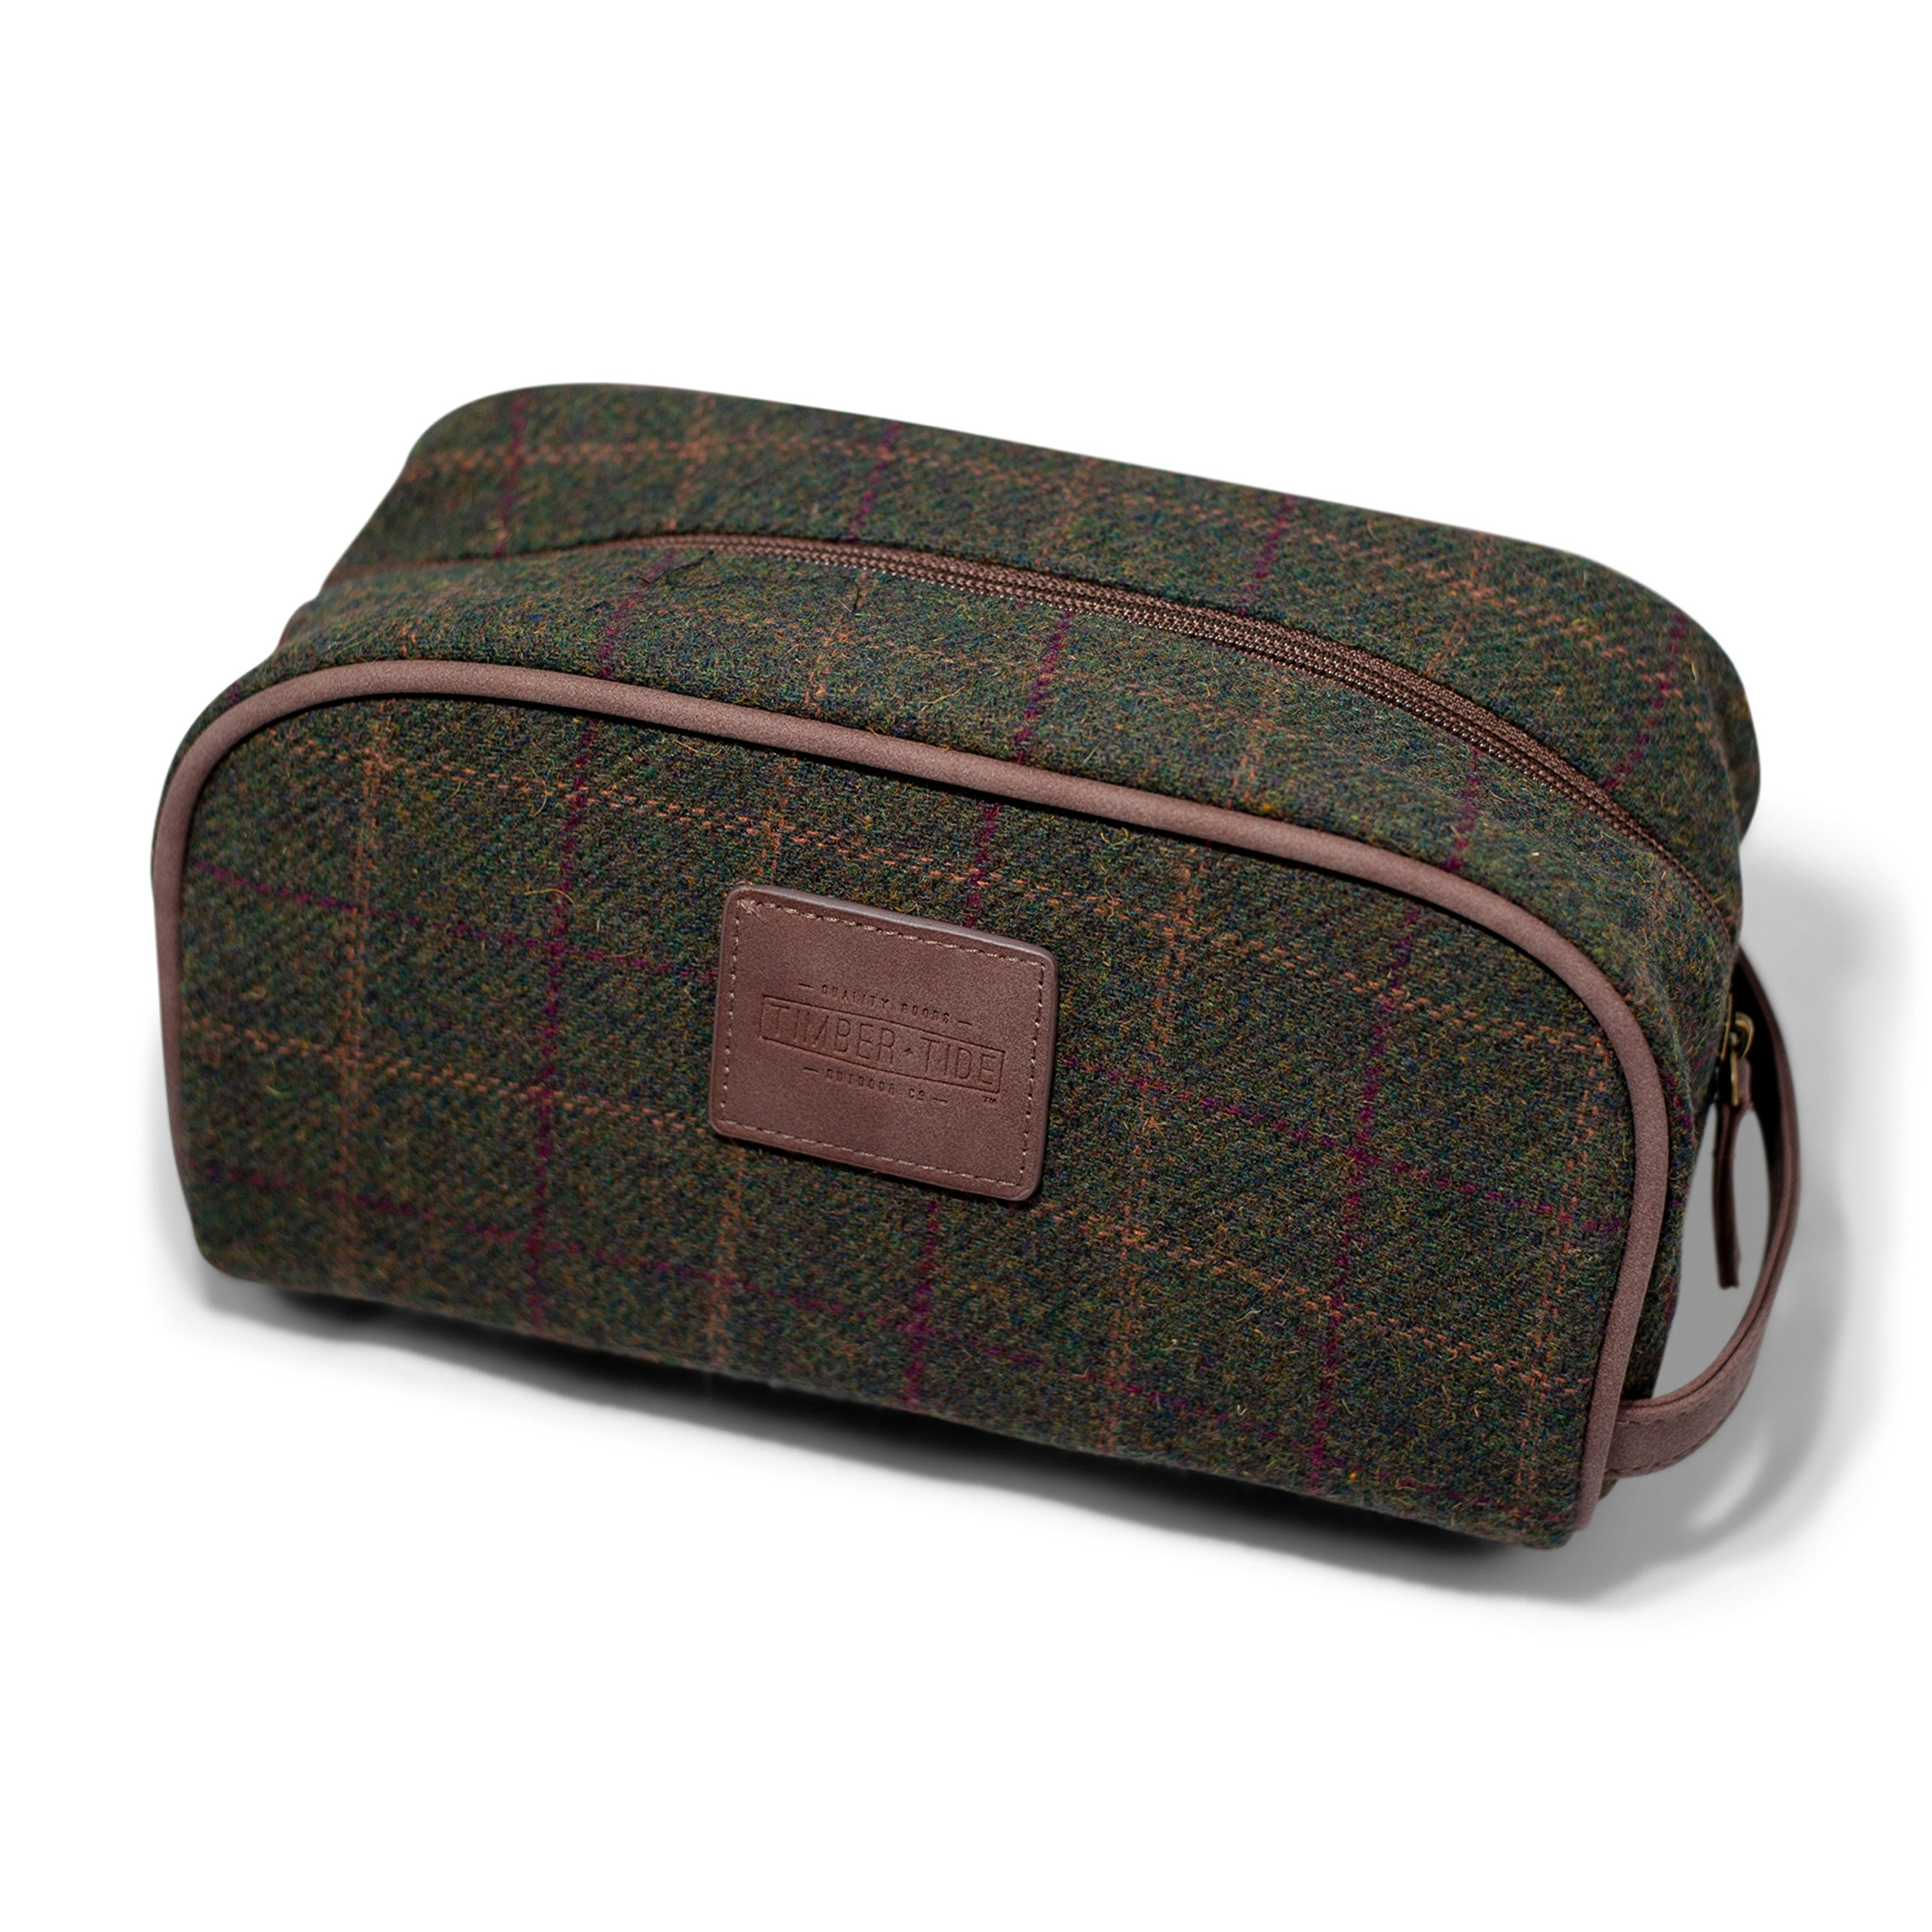 Luxury Toiletry Organizer Bag - Dopp Kit for Travel, Bathroom, Shower, and Shaving - Vintage Gentleman Plaid Exterior with Waterproof Interior - Extra Interior Zippered Pocket for More Storage